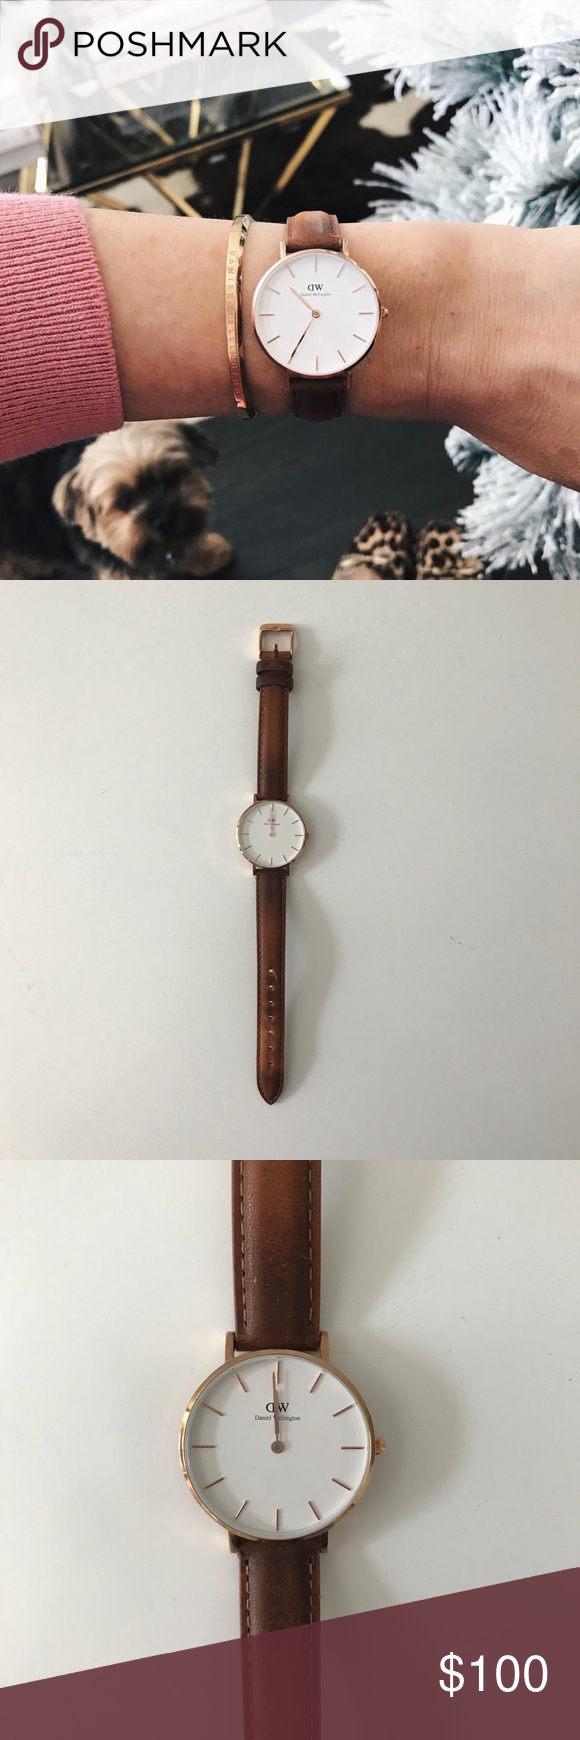 727aa1992c338f Daniel Wellington classic durham brown watch 32mm Lightly used Brown  leather band Classic petite Durham size